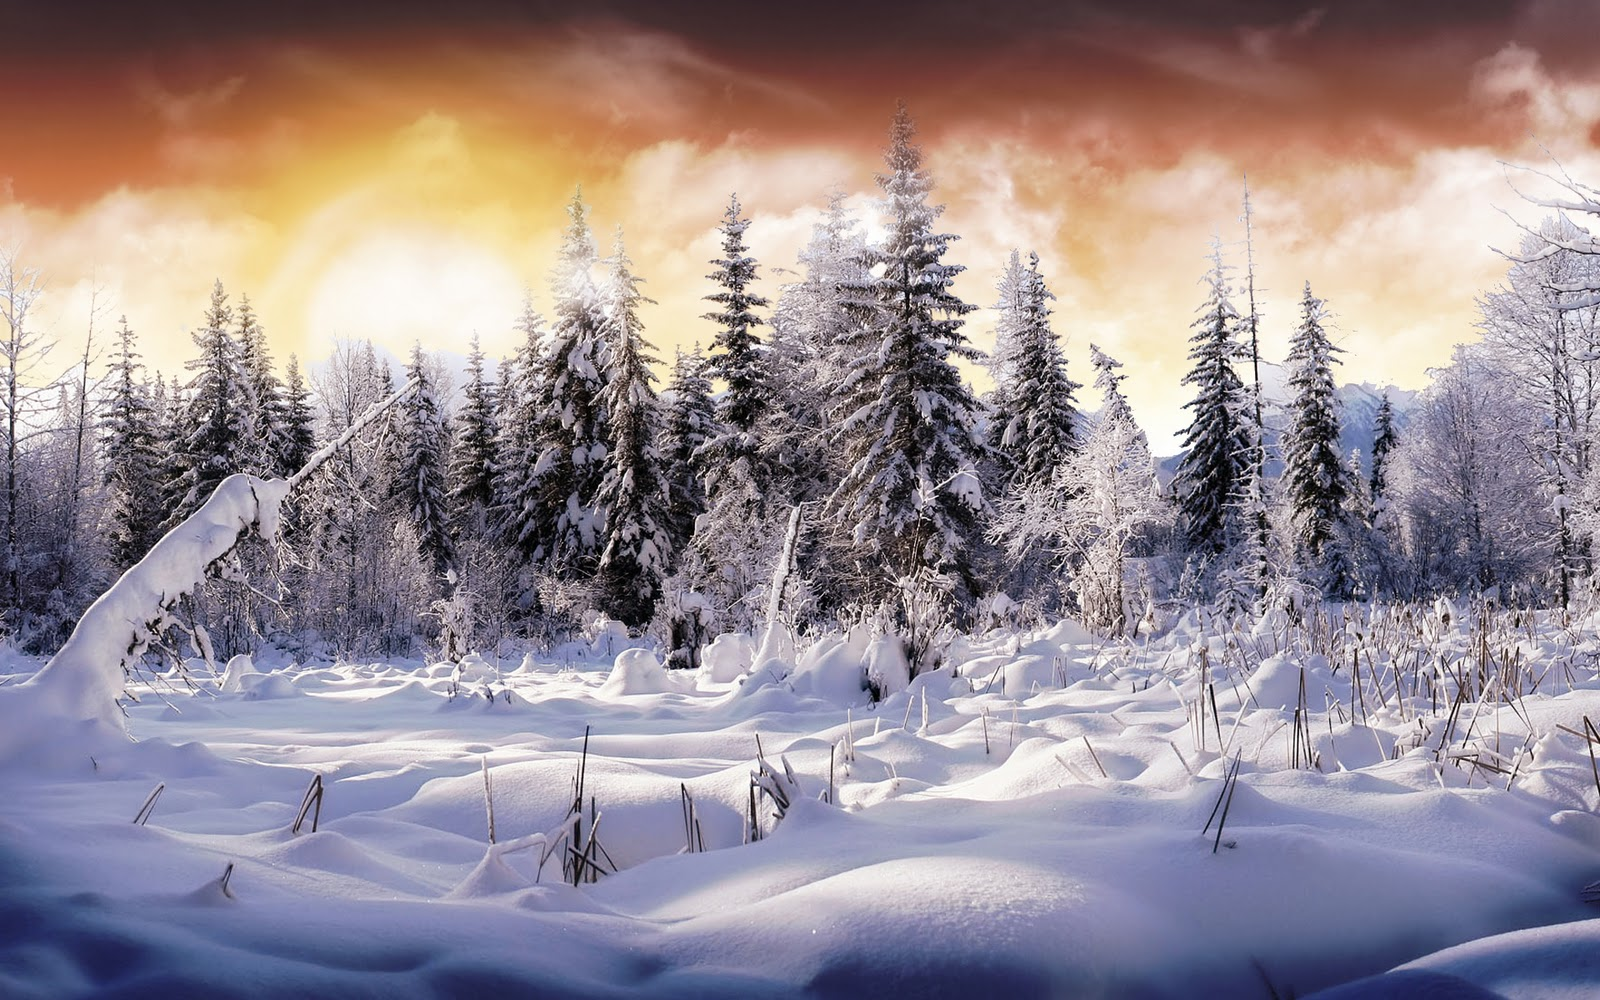 http://4.bp.blogspot.com/-RY55w-PYLos/TwbROppHWxI/AAAAAAAAAYY/0lI-W7wgwZI/s1600/Winter+Wallpapers+HD+4.jpg